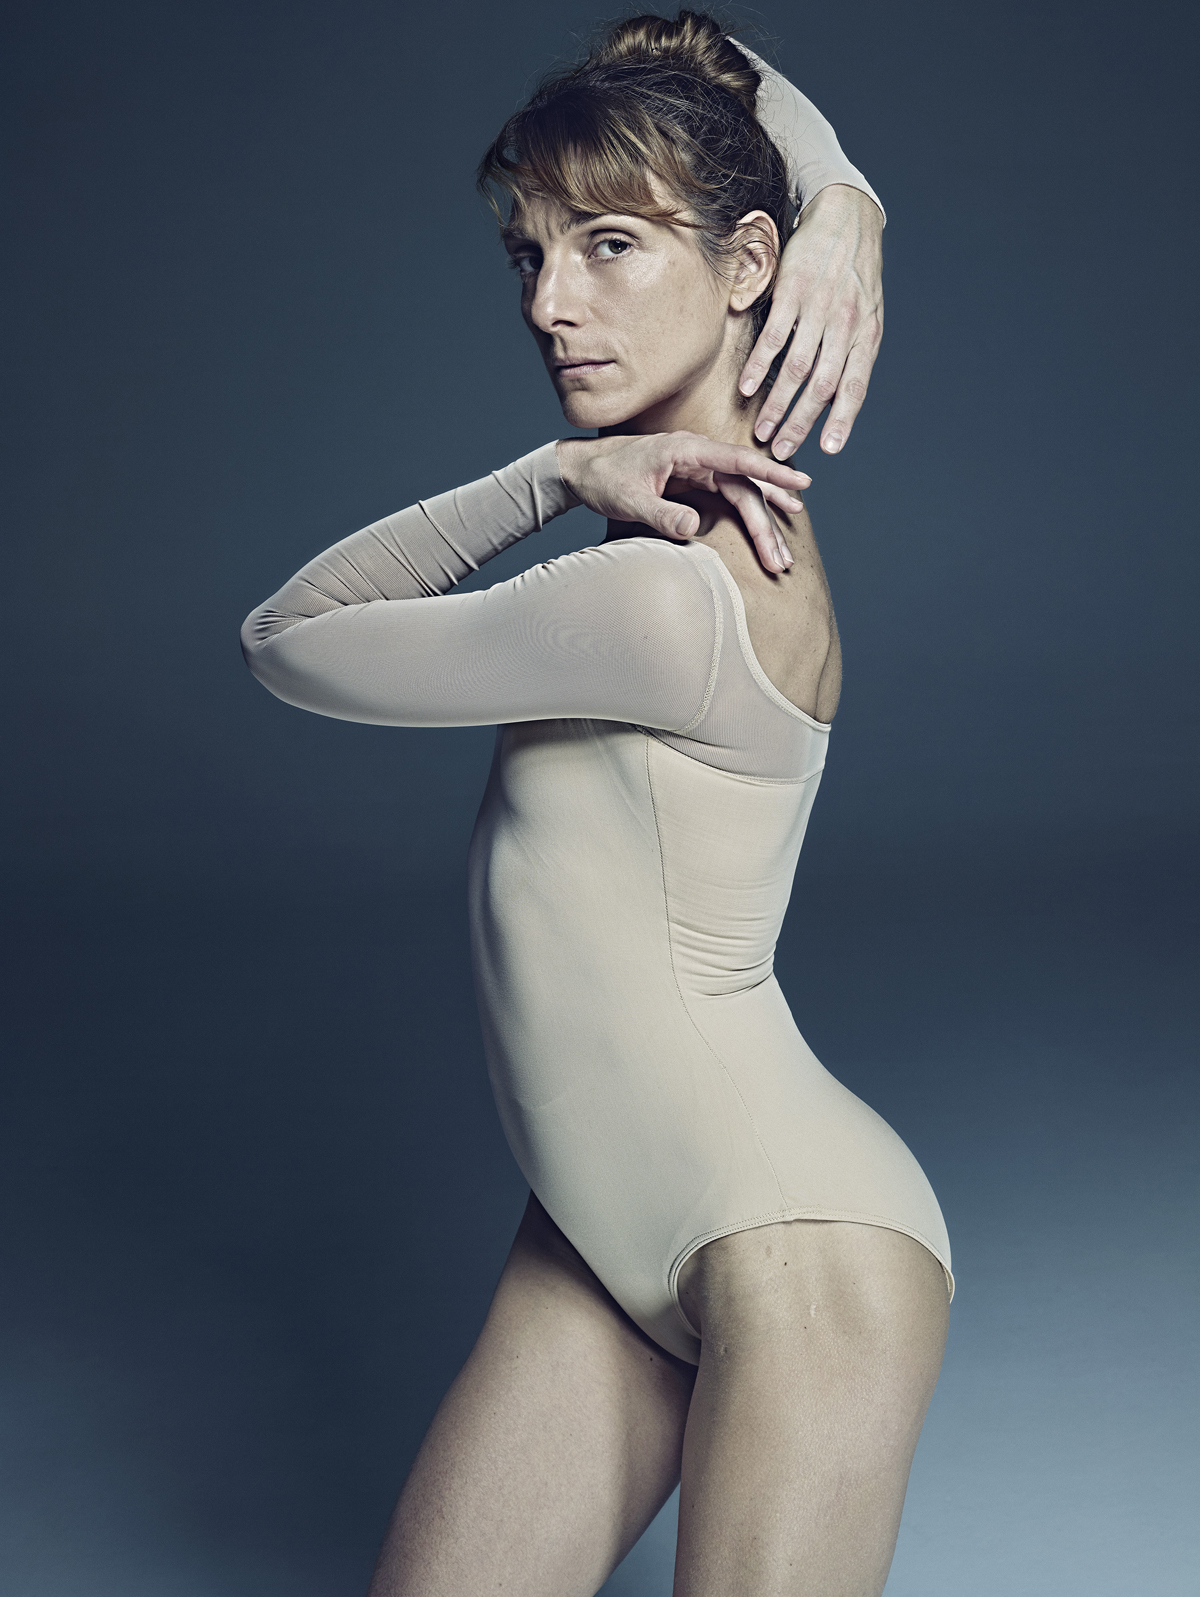 Zenaida Yanowsky, principal of The Royal Ballet